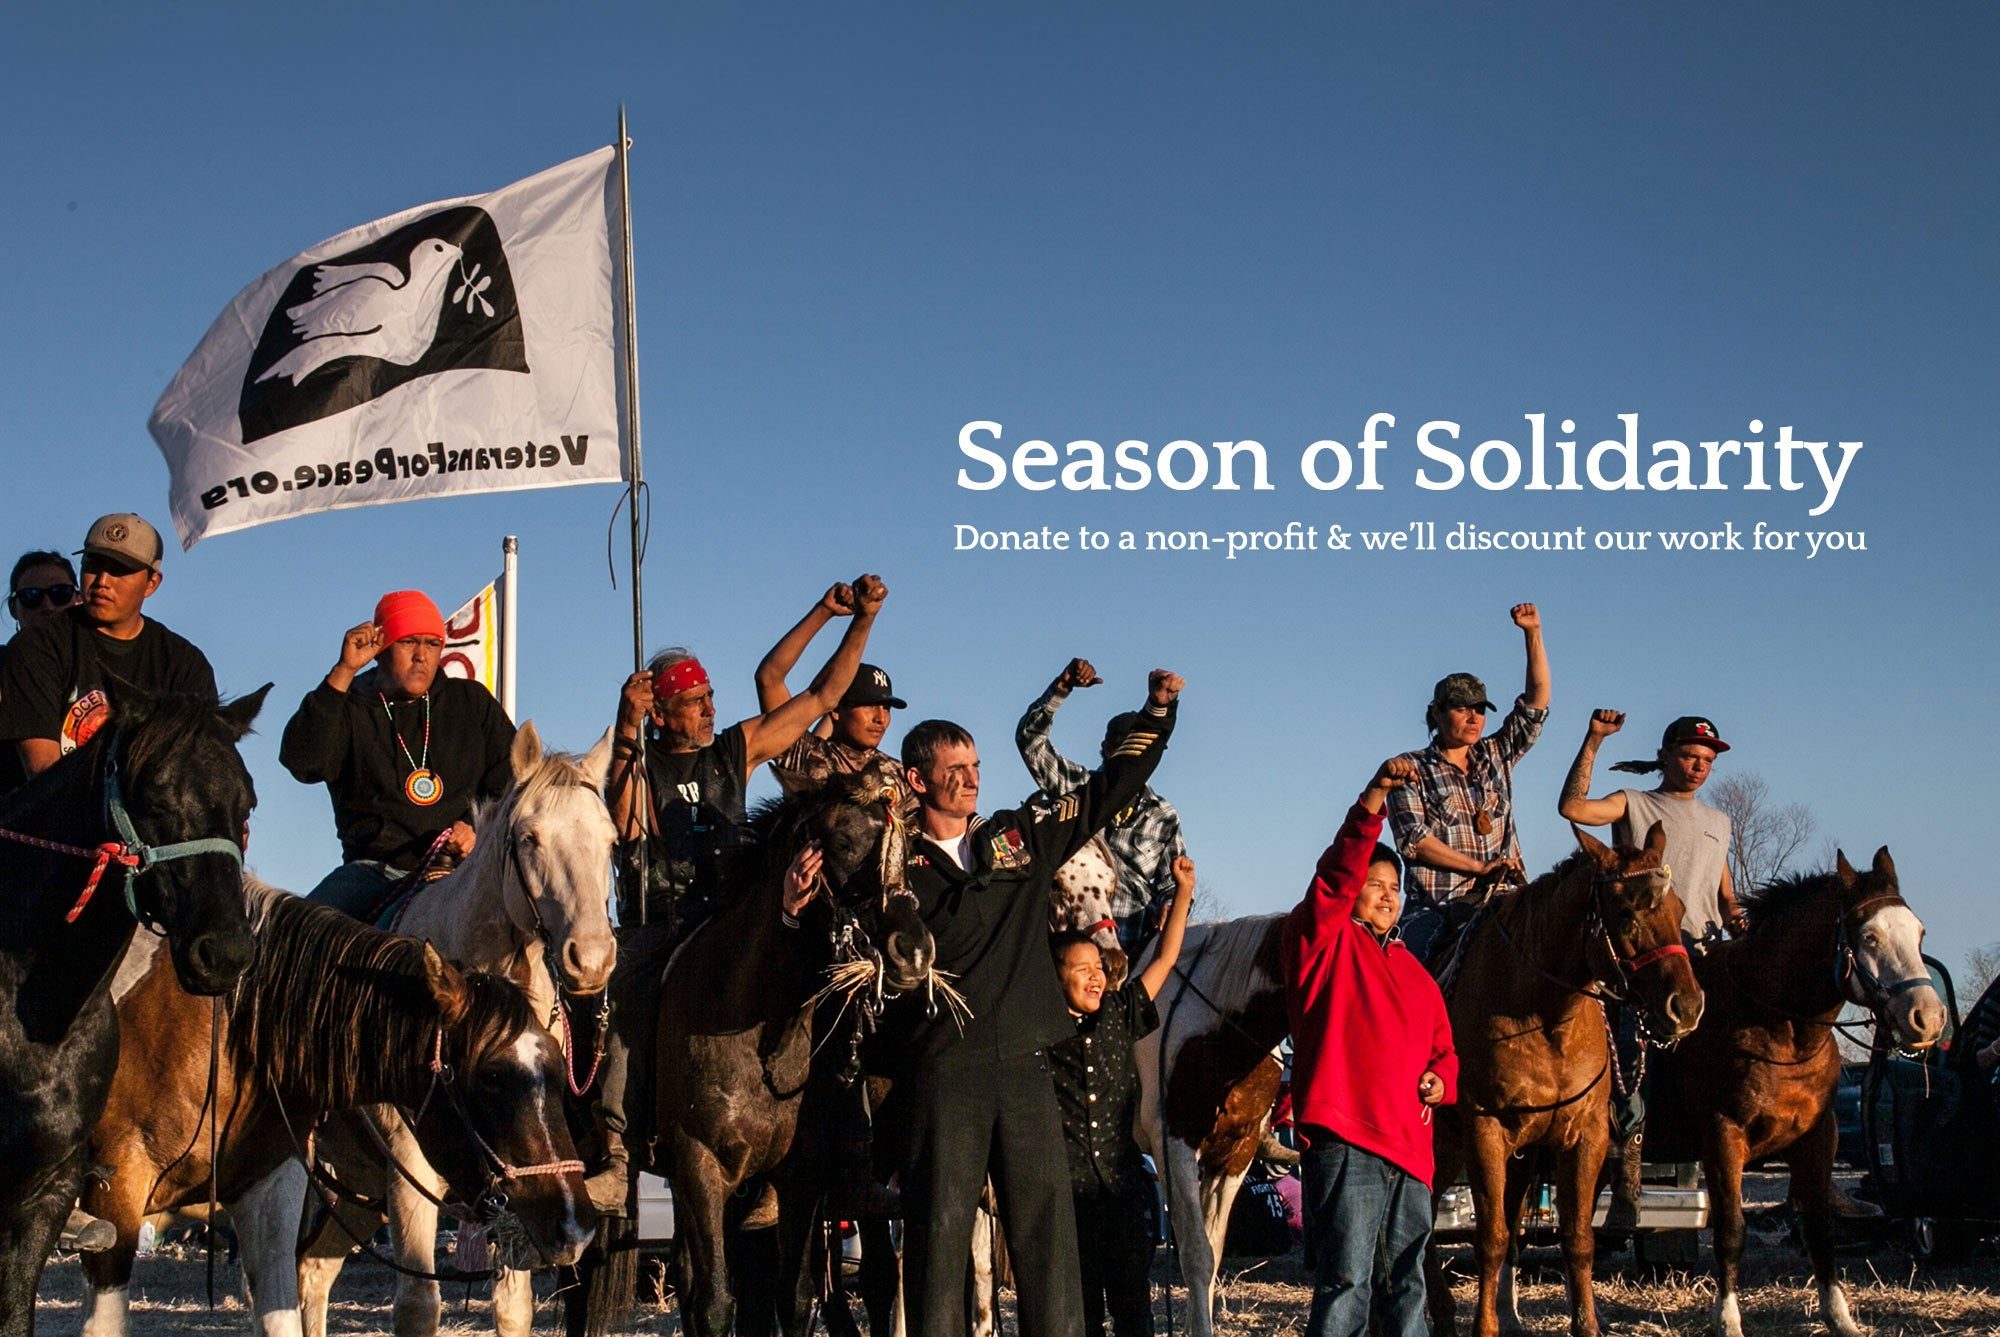 Season of Solidarity